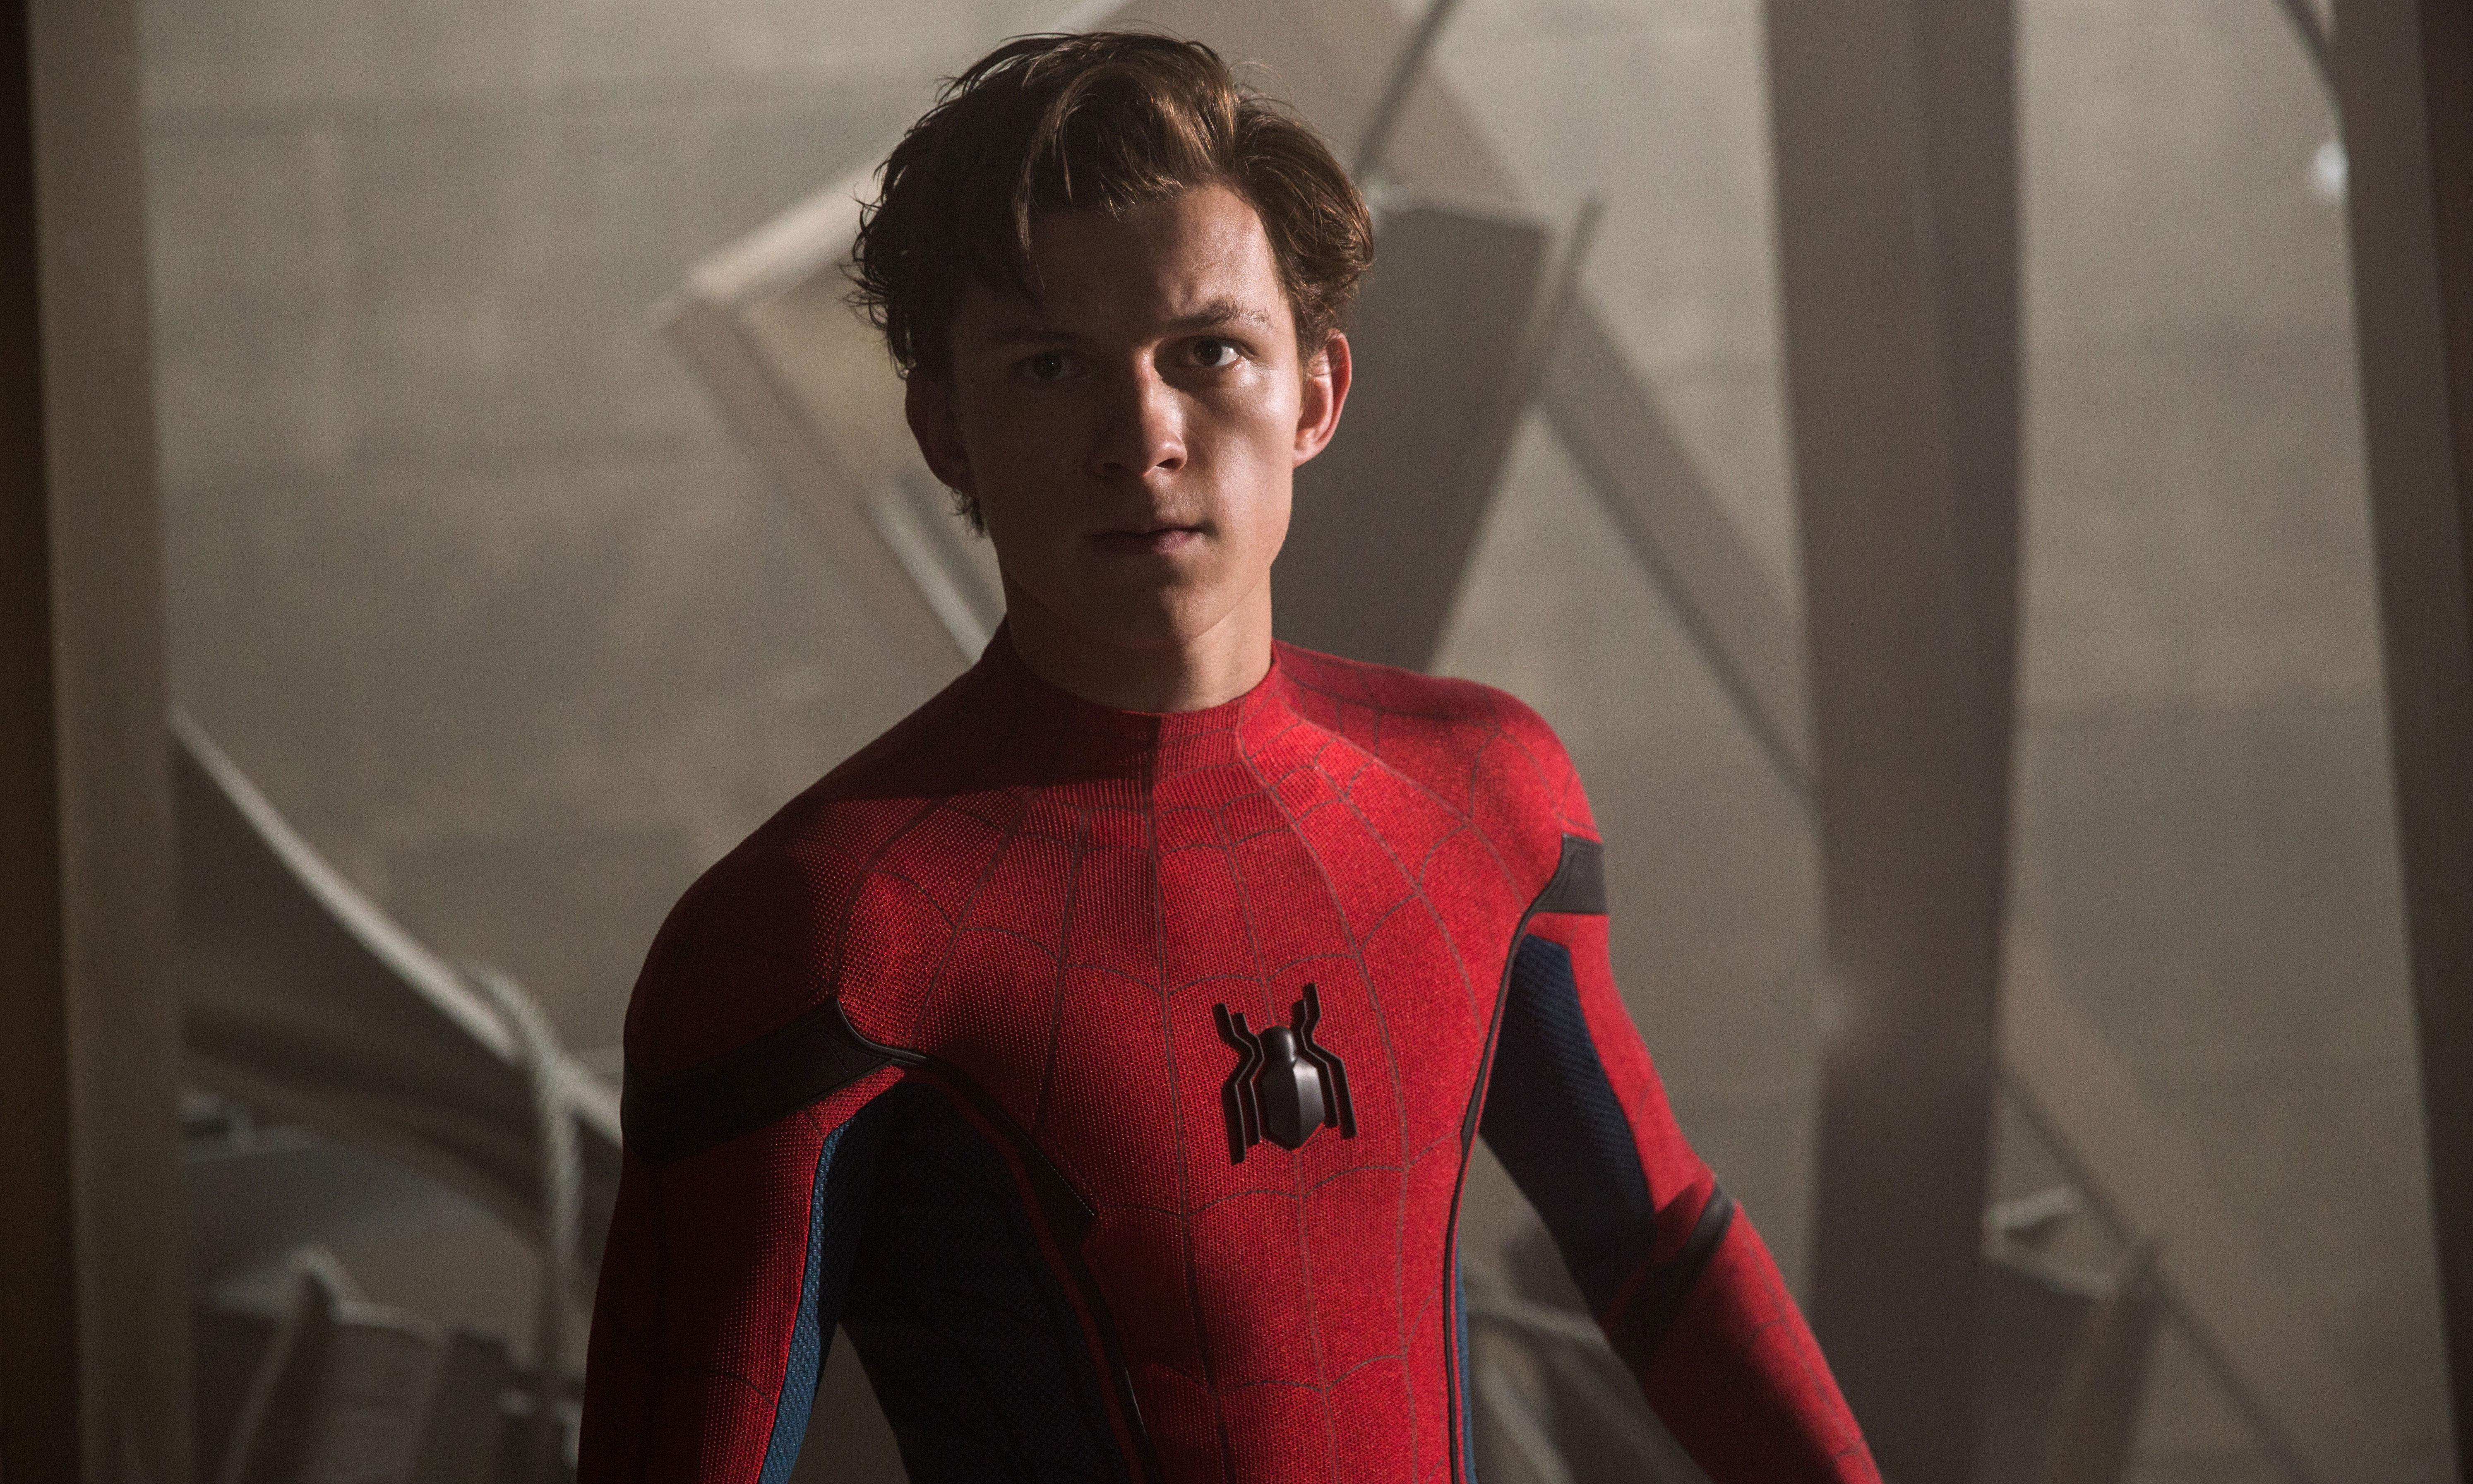 Can Spider-Man survive outside of the Marvel universe?